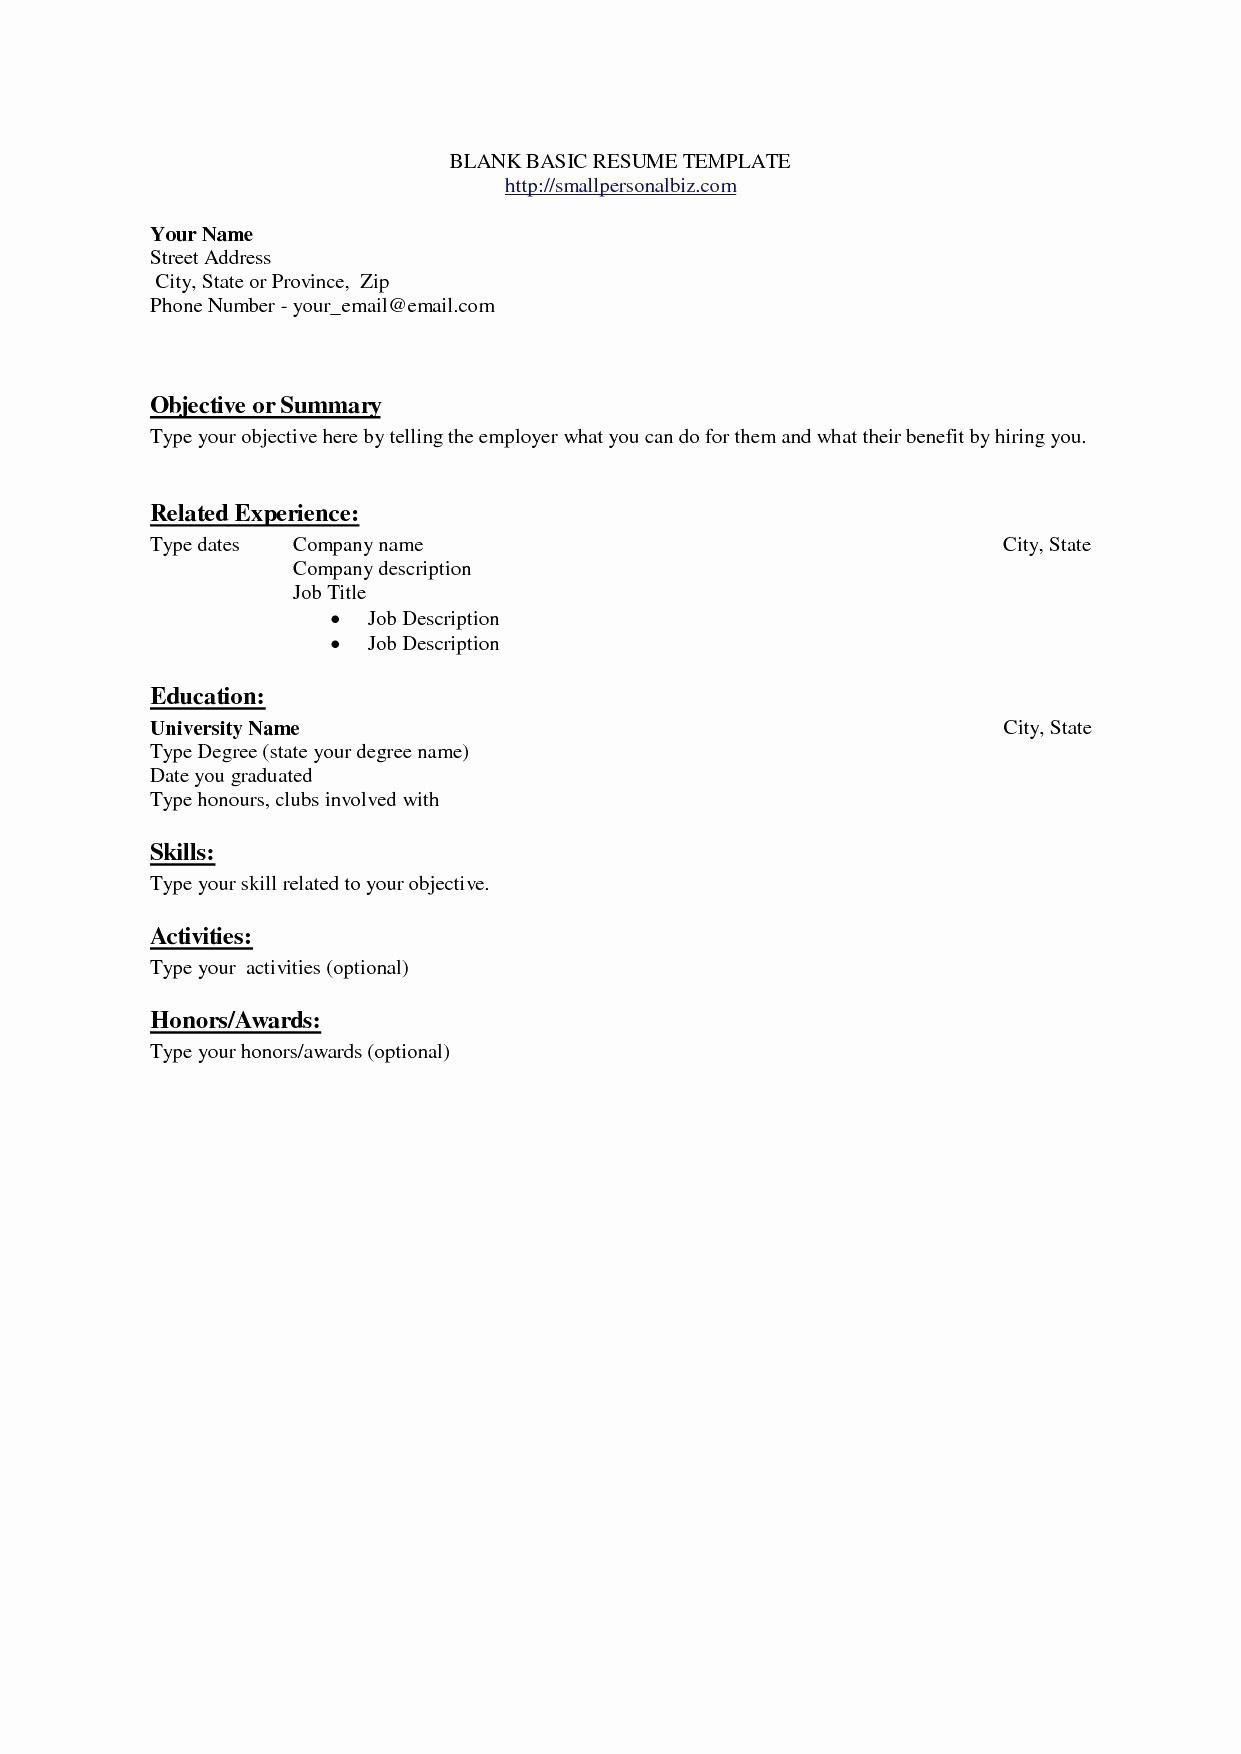 Mover Job Description for Resume - Mover Resume Unique Resum Best Resume Template